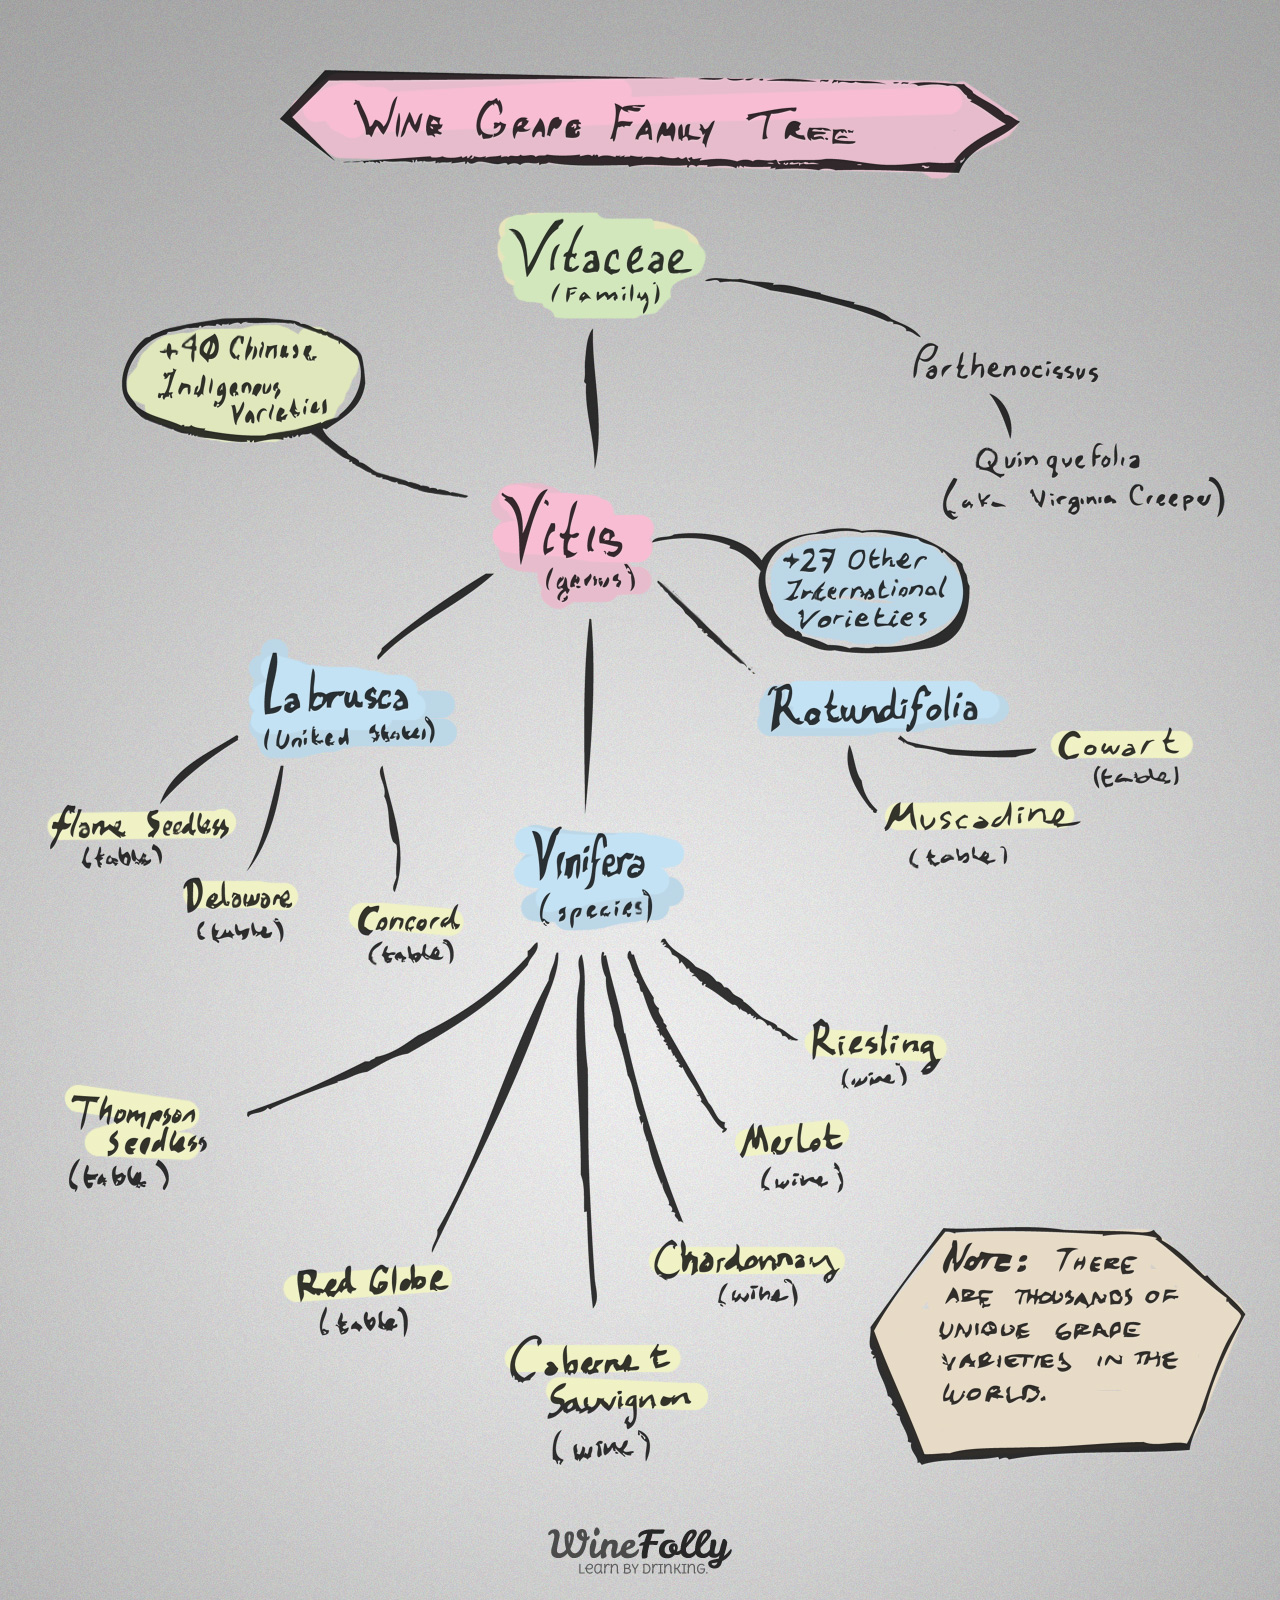 Wine Grape Vitis Genus Species Family Tree